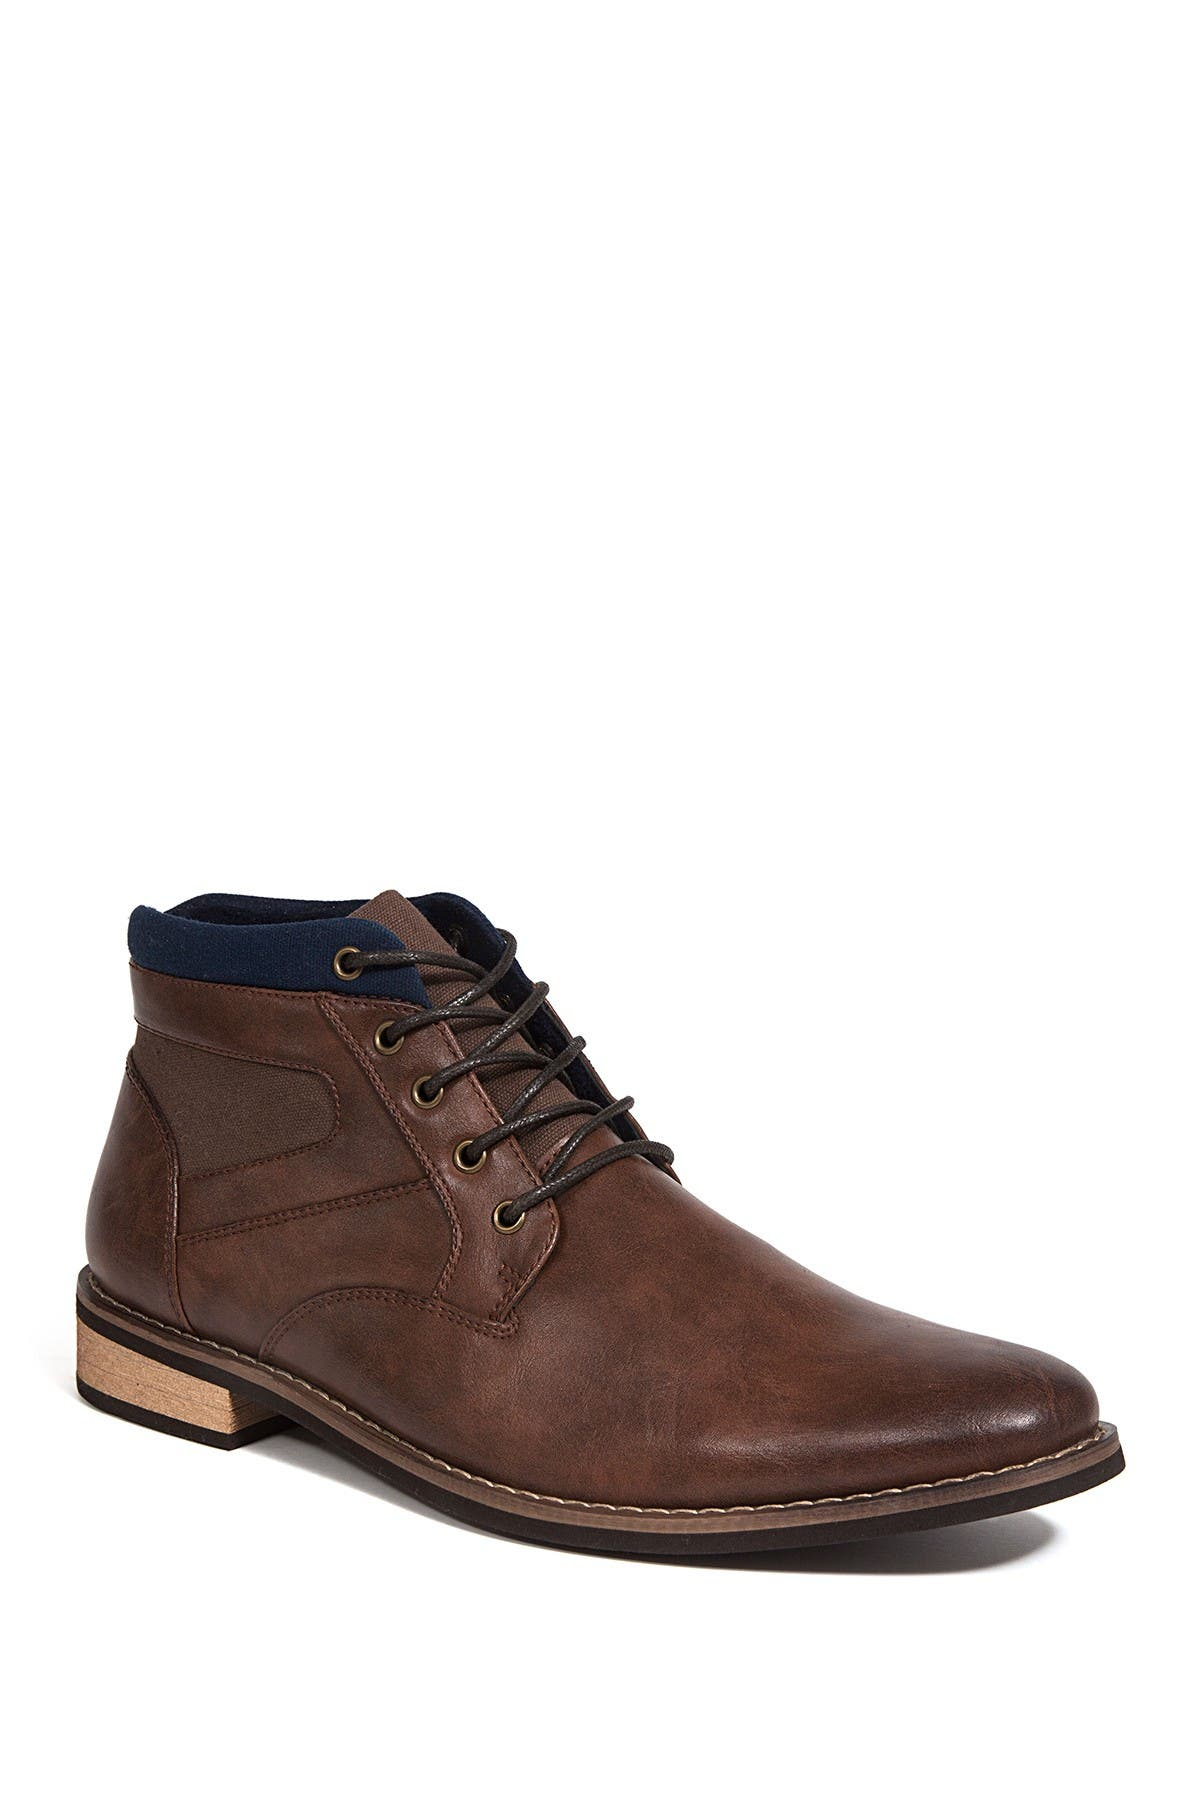 Image of Deer Stags Irvine Lace-Up Boot